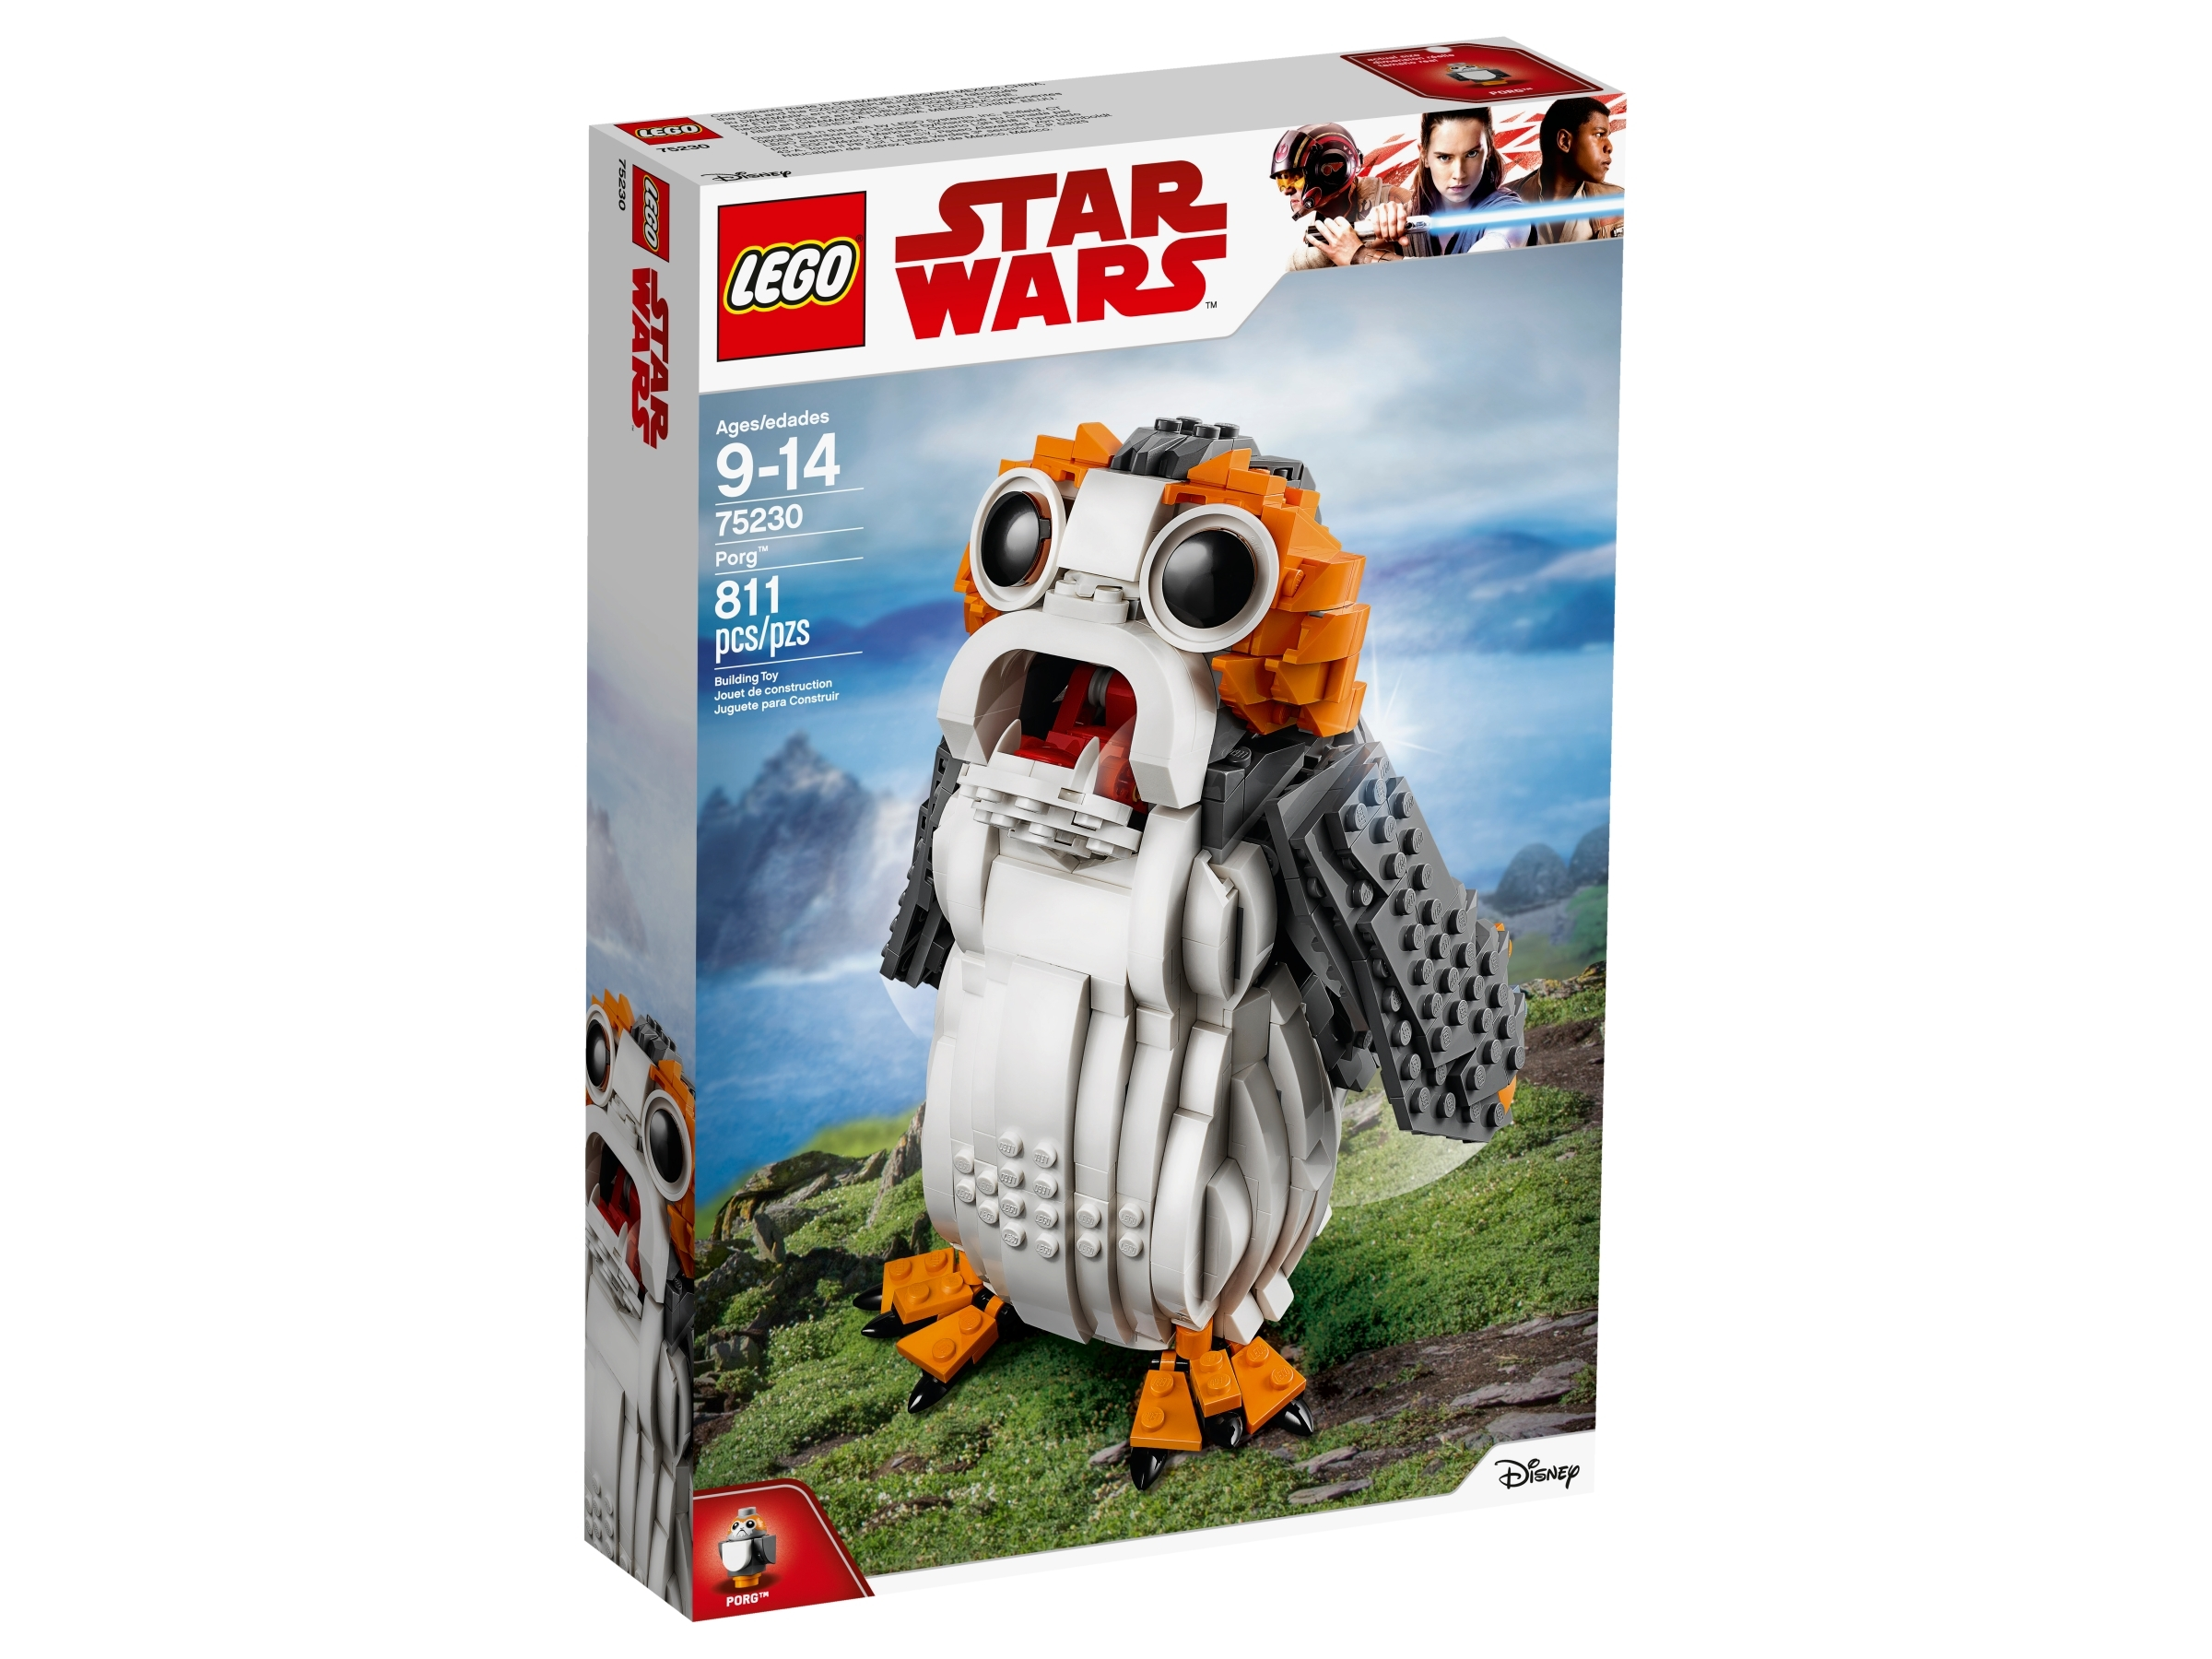 Lego Porg 75200 with Dark Bluish Gray Wings and Tail Animal Minifigure Figure